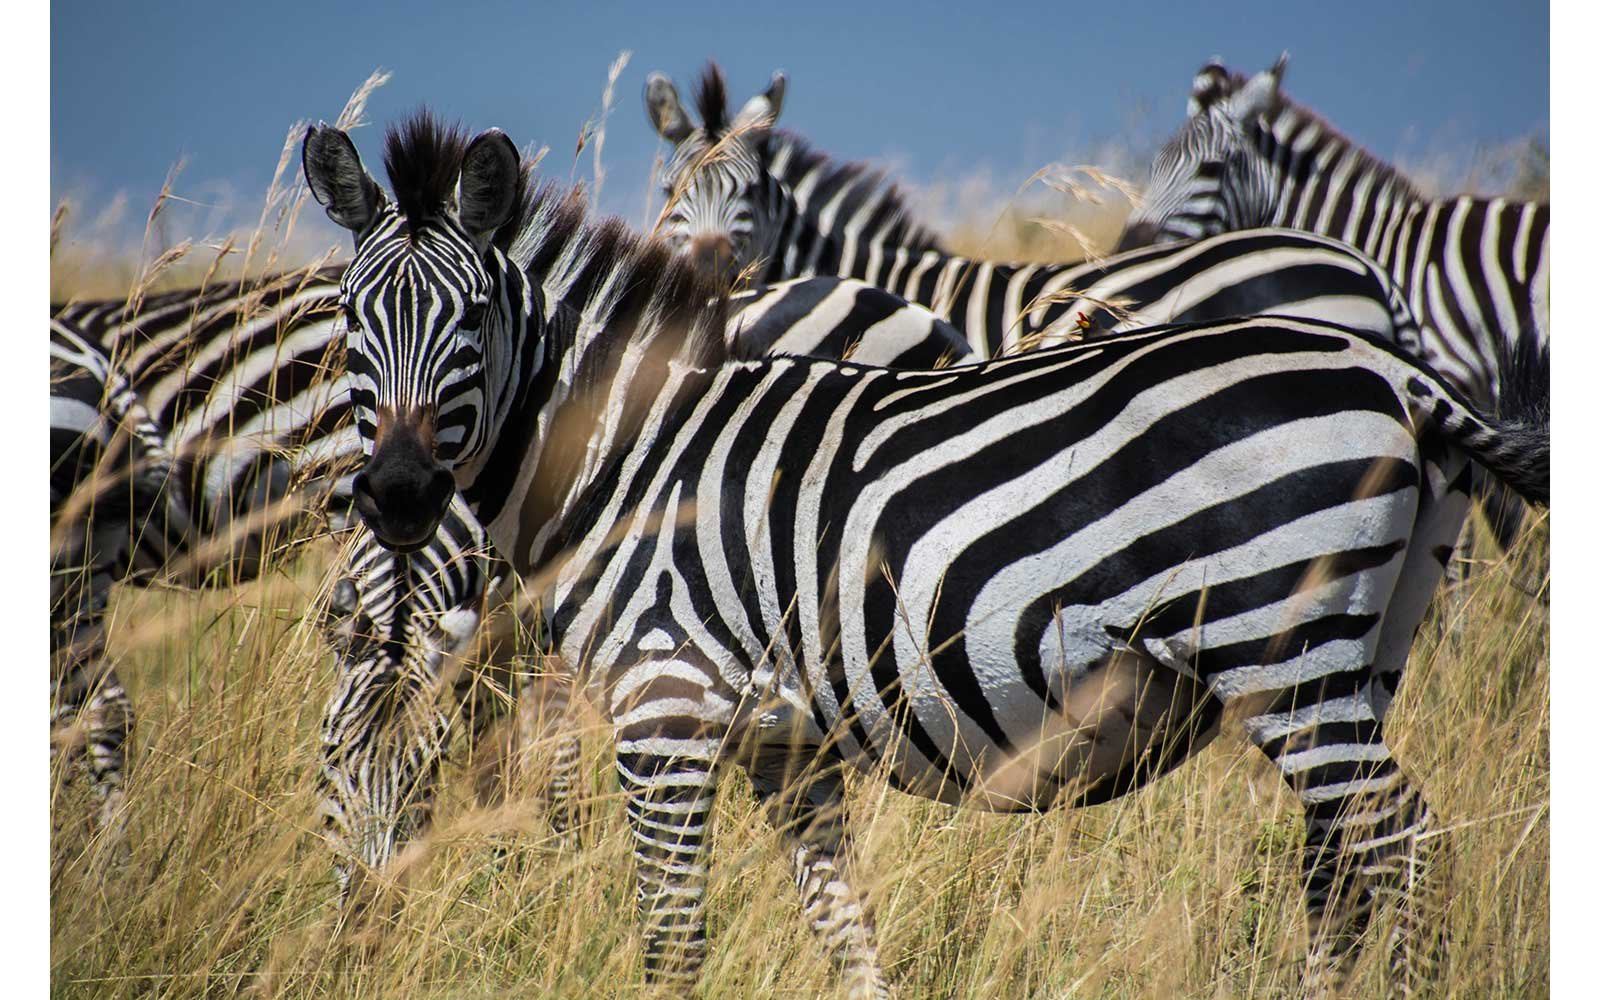 Zebras during the great migration